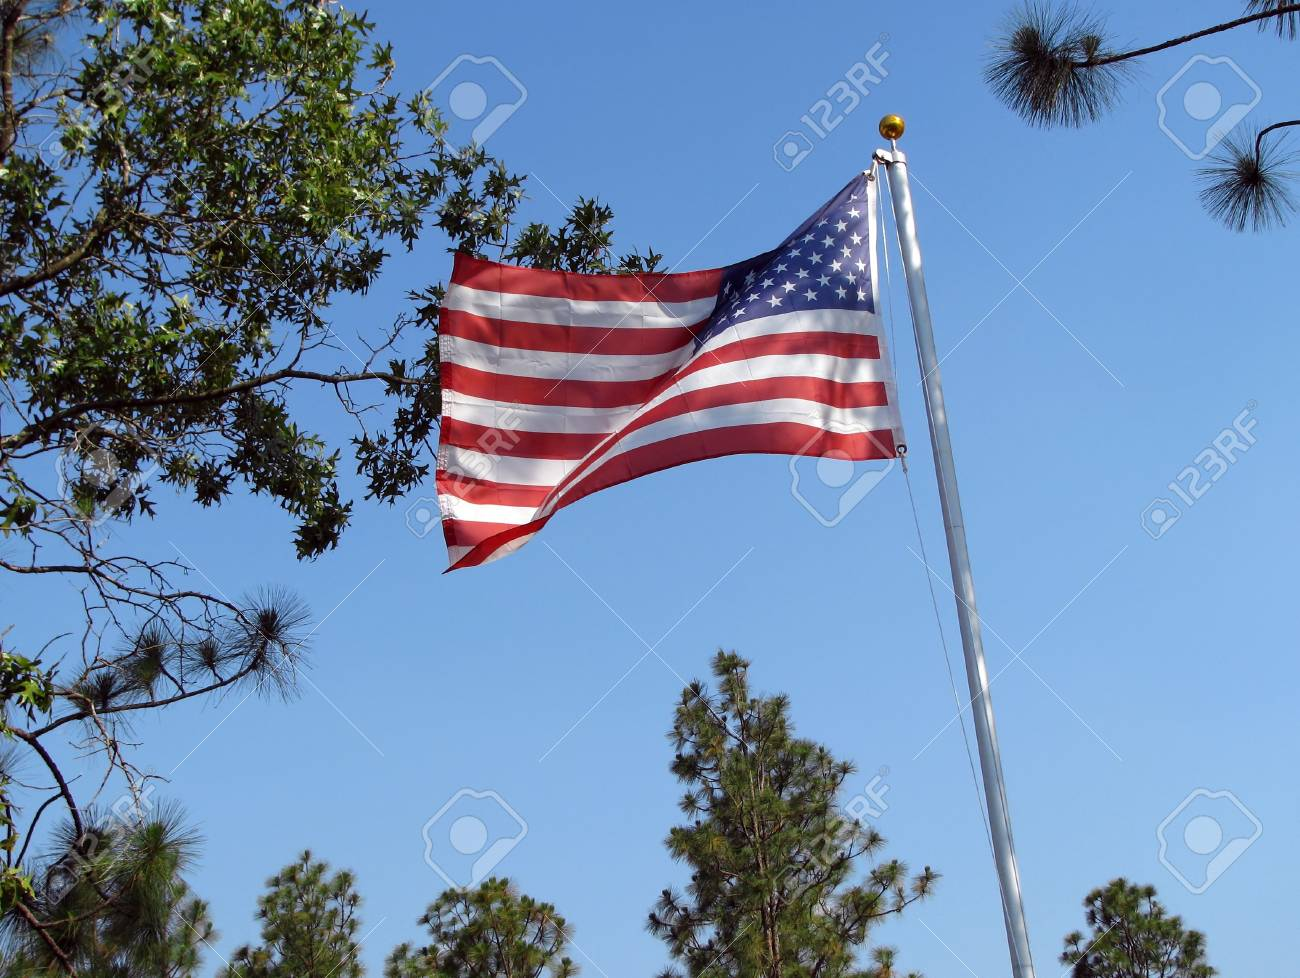 American flag blowing in the gentle breeze Stock Photo - 3274220